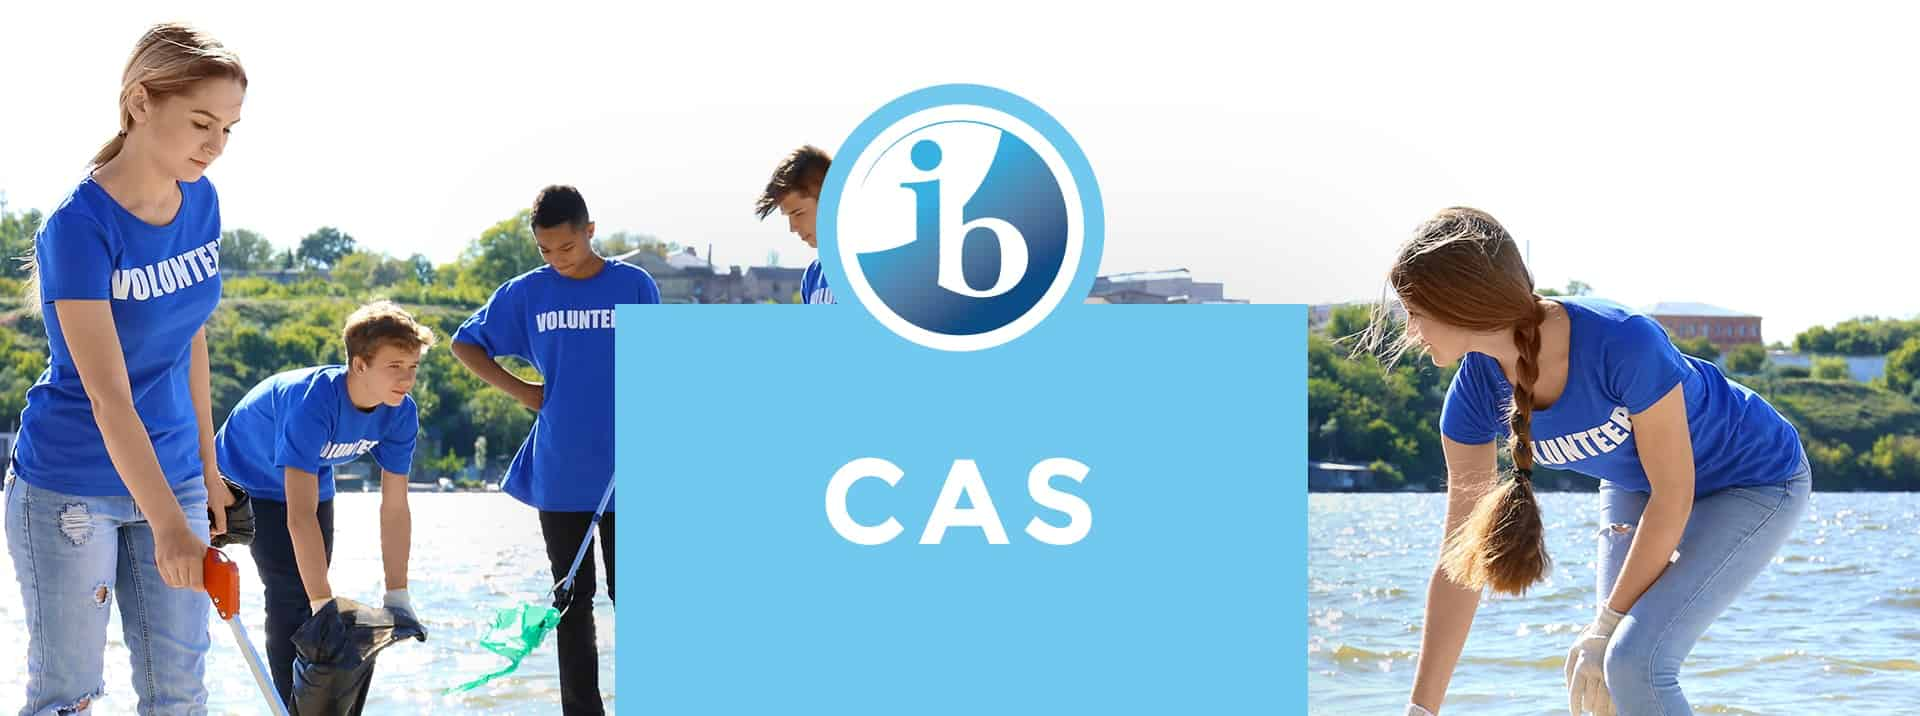 FeatImage_IB-CAS_1920x716-min What is IB CAS (Creativity Action Service)?